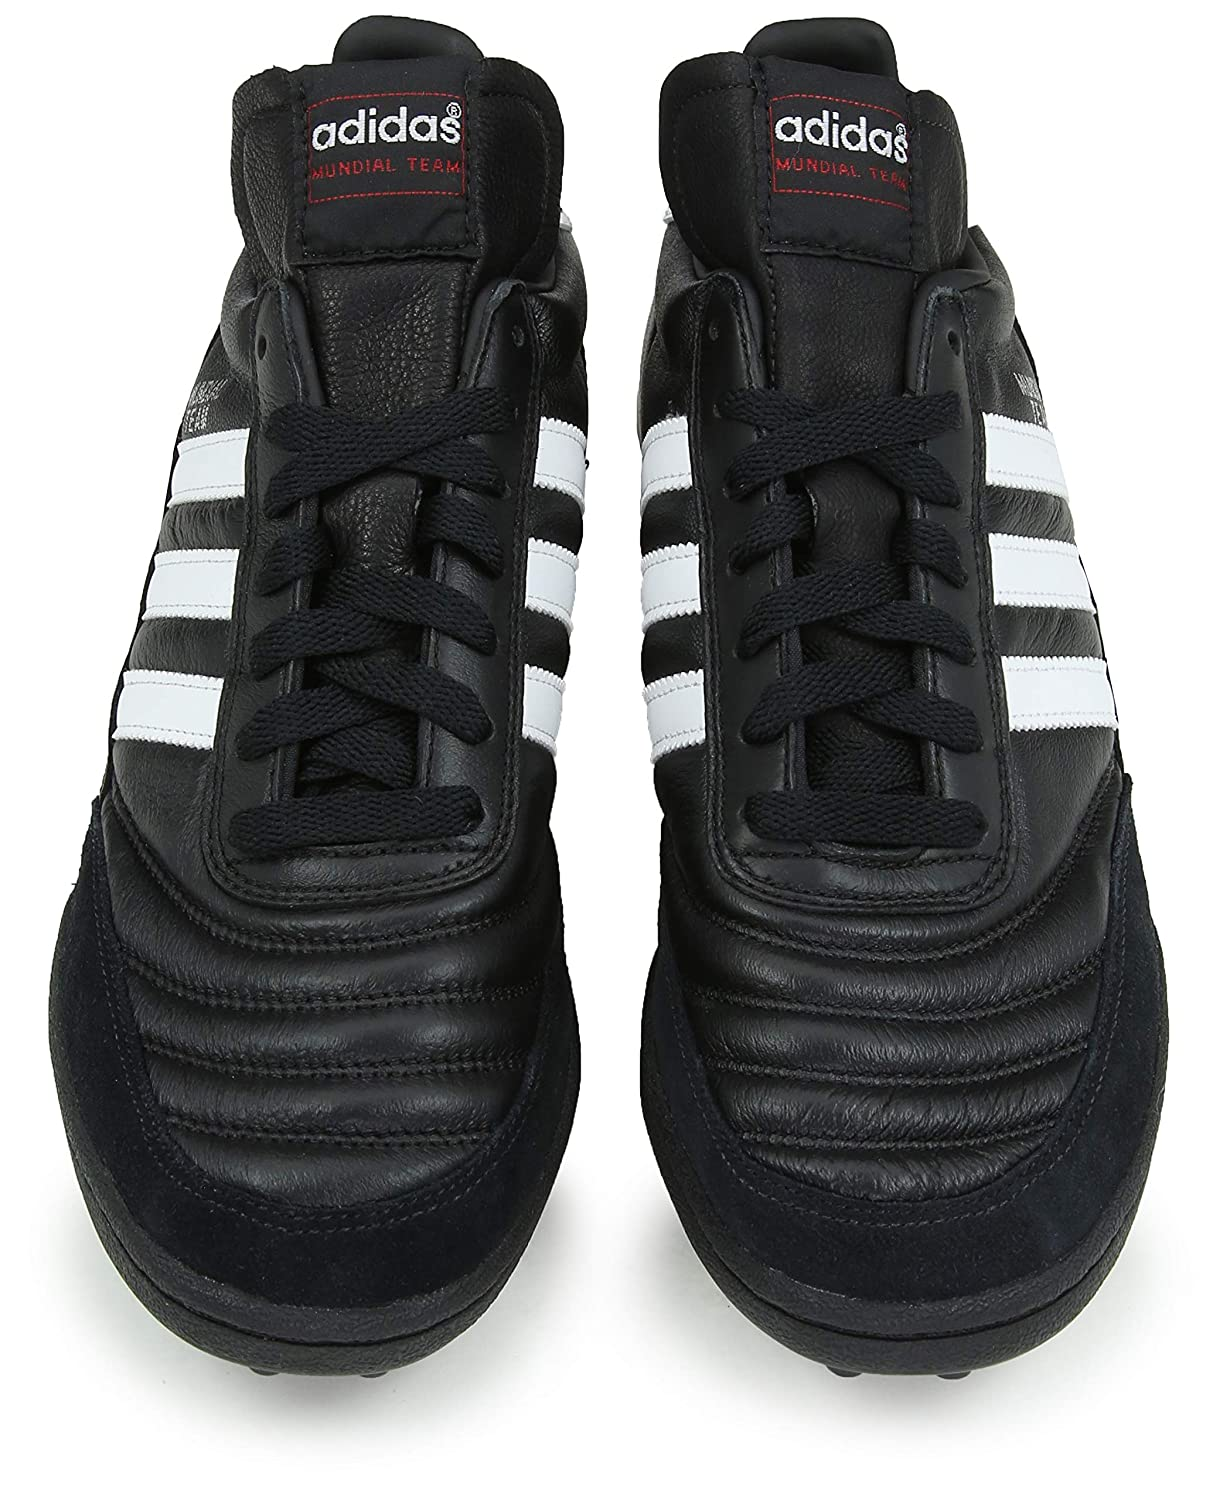 66bf6c3195a Adidas Mundial Team Mens Soccer Shoe  Amazon.co.uk  Shoes   Bags